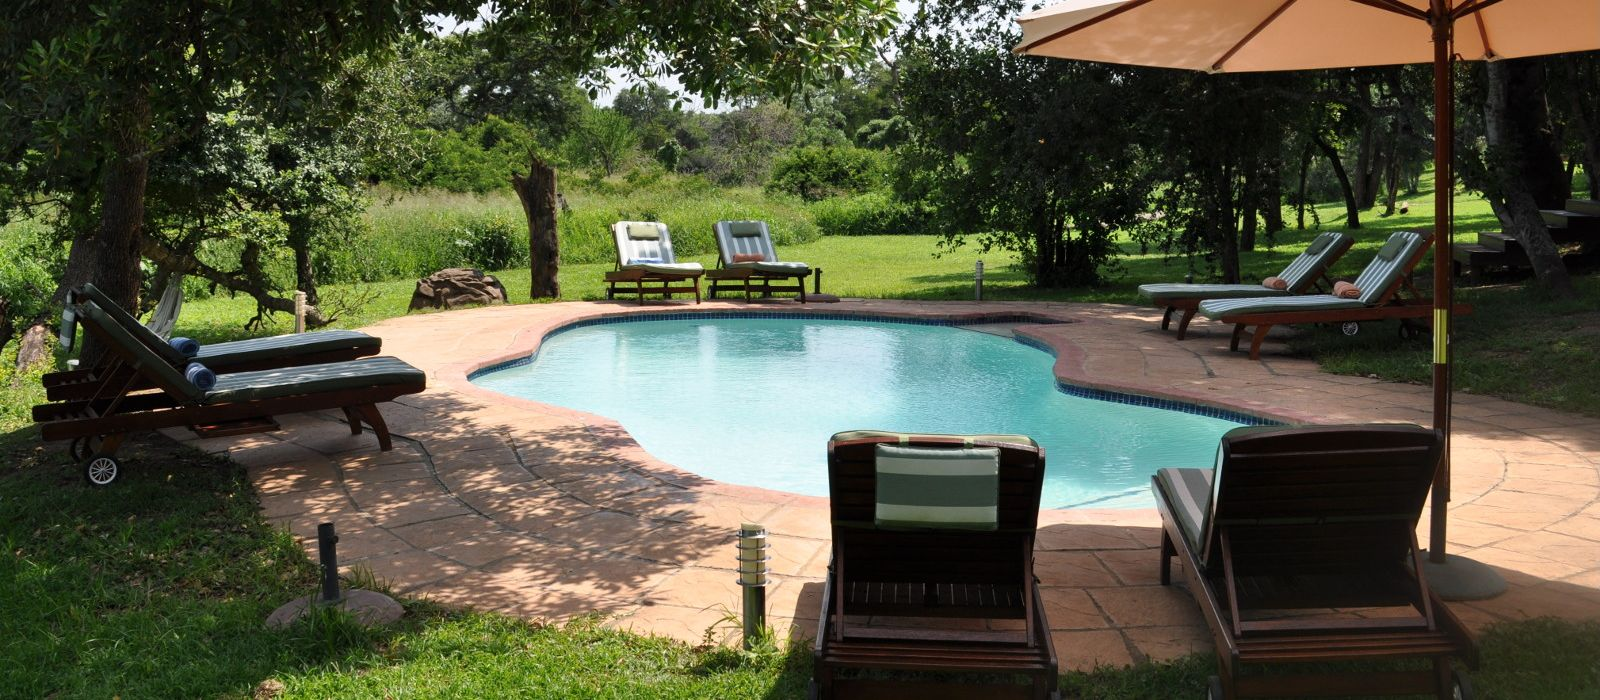 Hotel Thula Thula Luxury Tented Camp South Africa